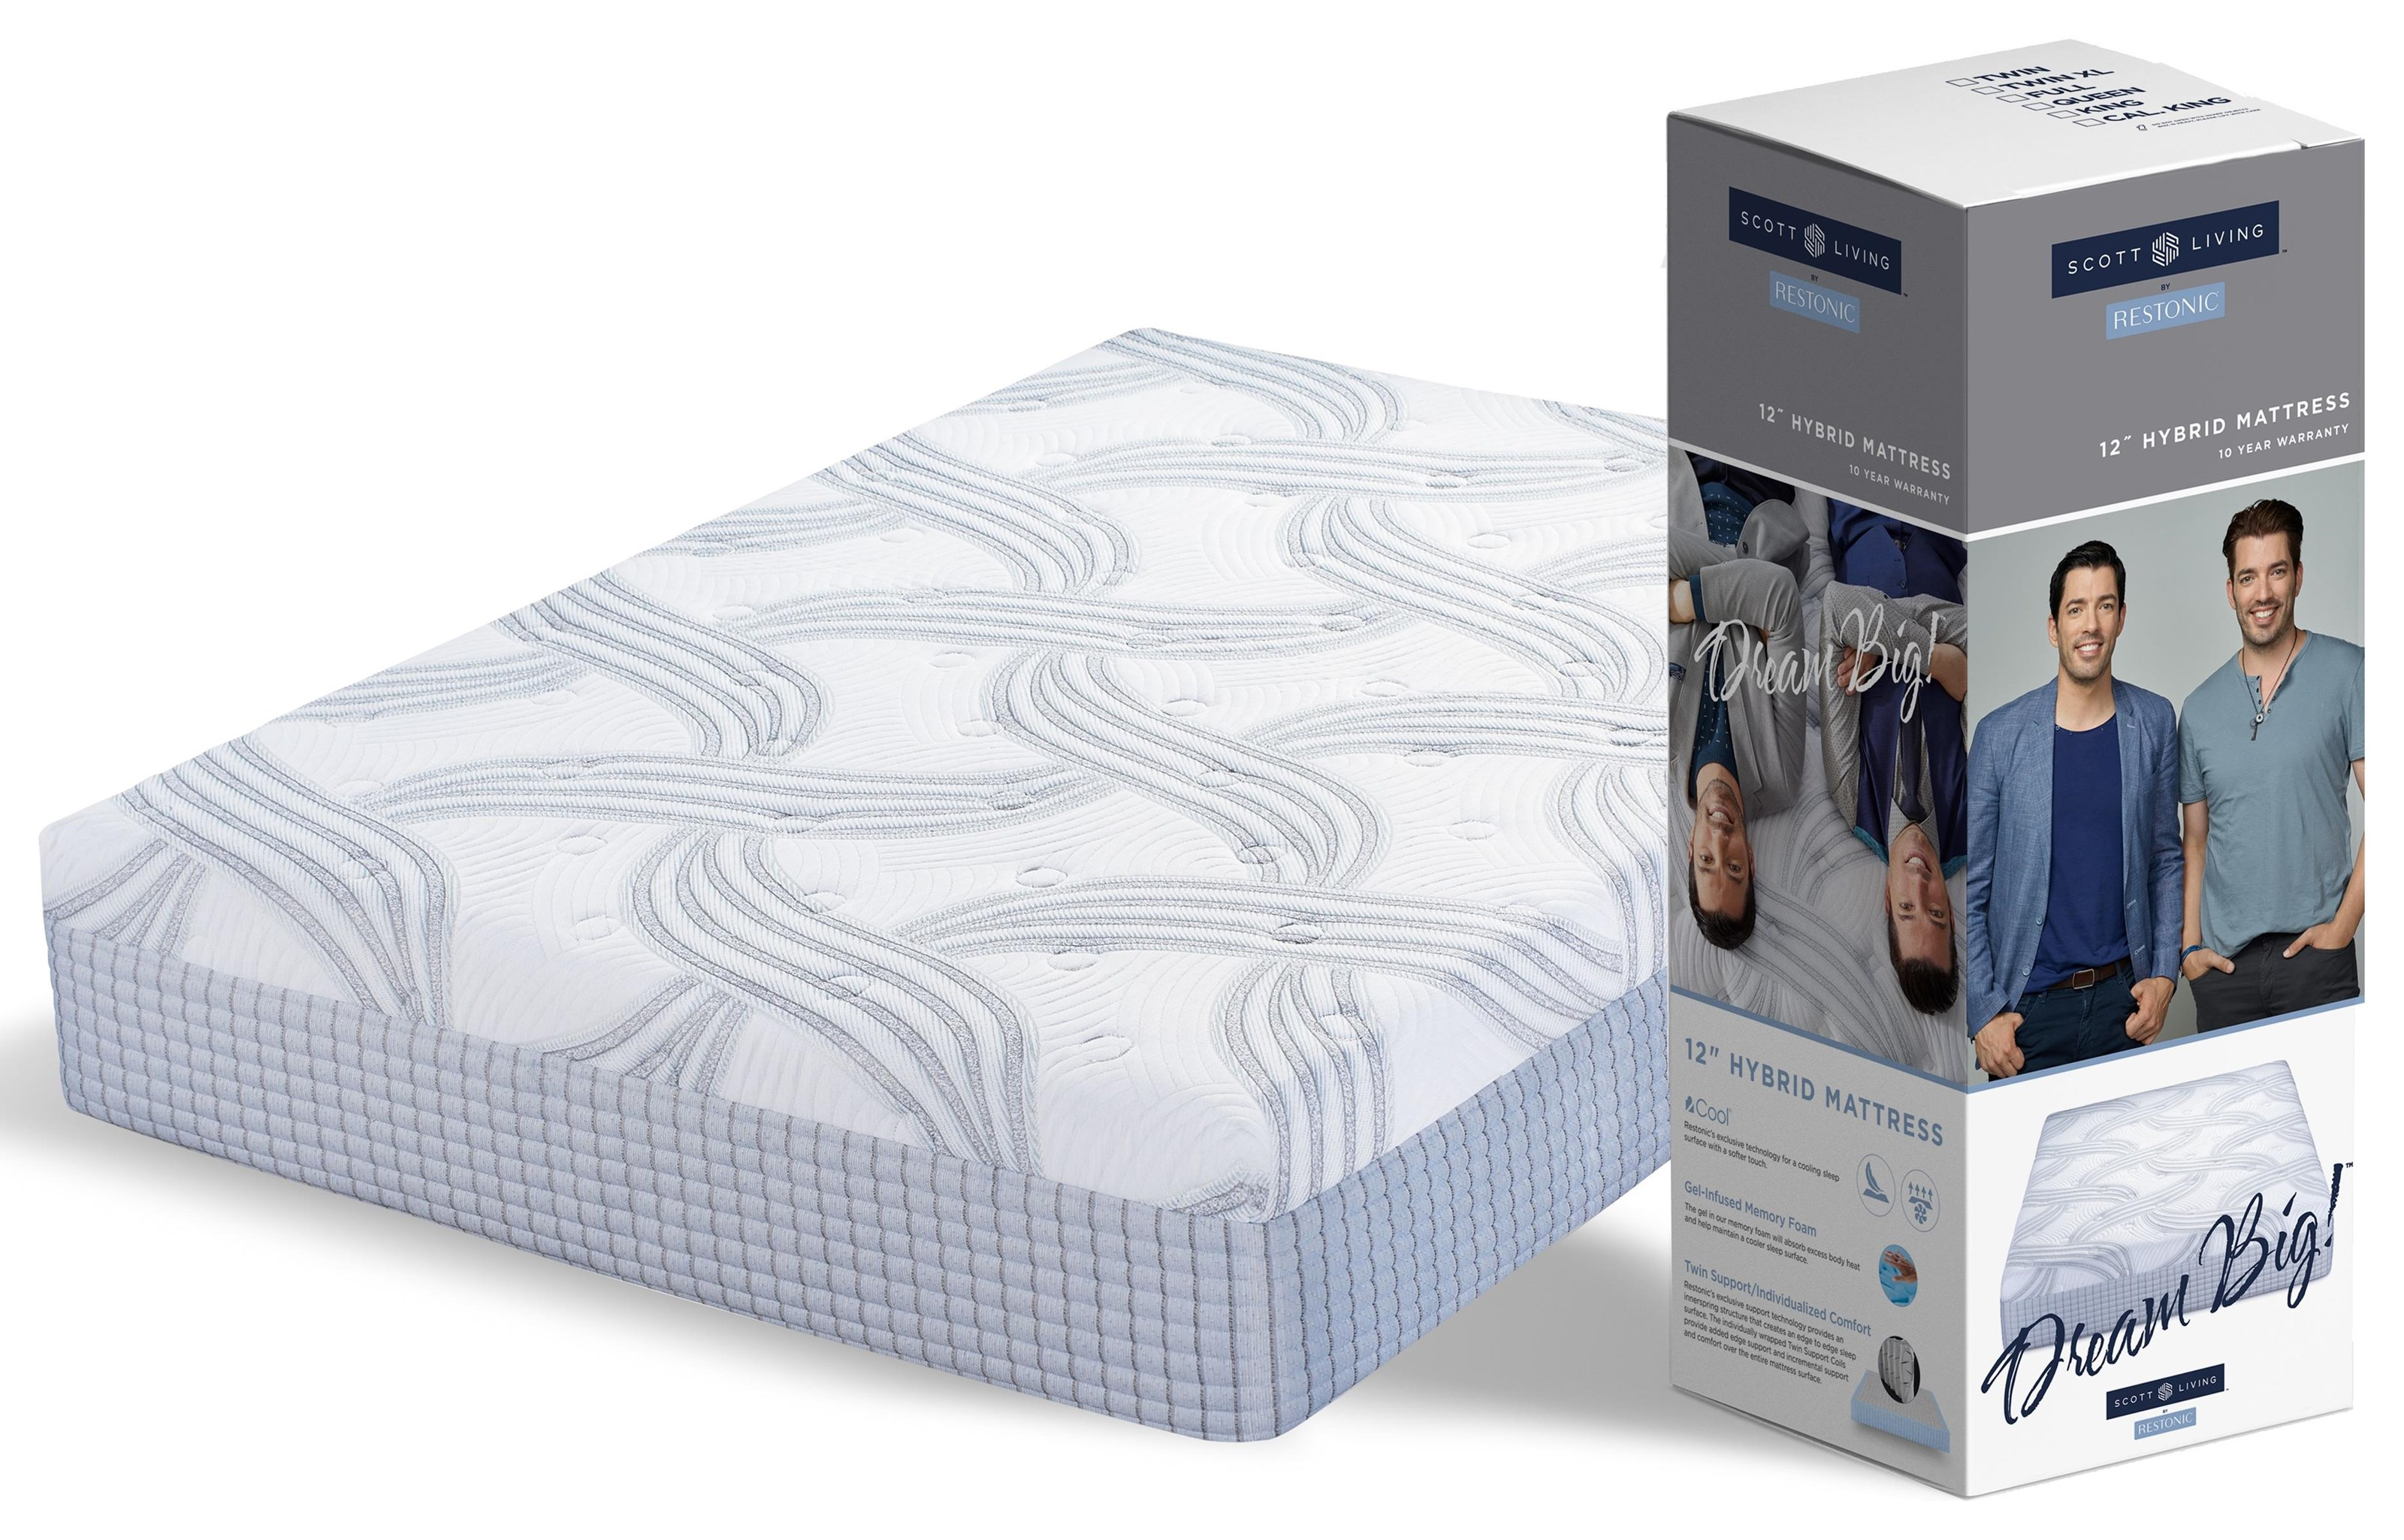 SL Hybrid SS Scott Living Queen Hybrid Mattress in a Box by Restonic at C. S. Wo & Sons Hawaii